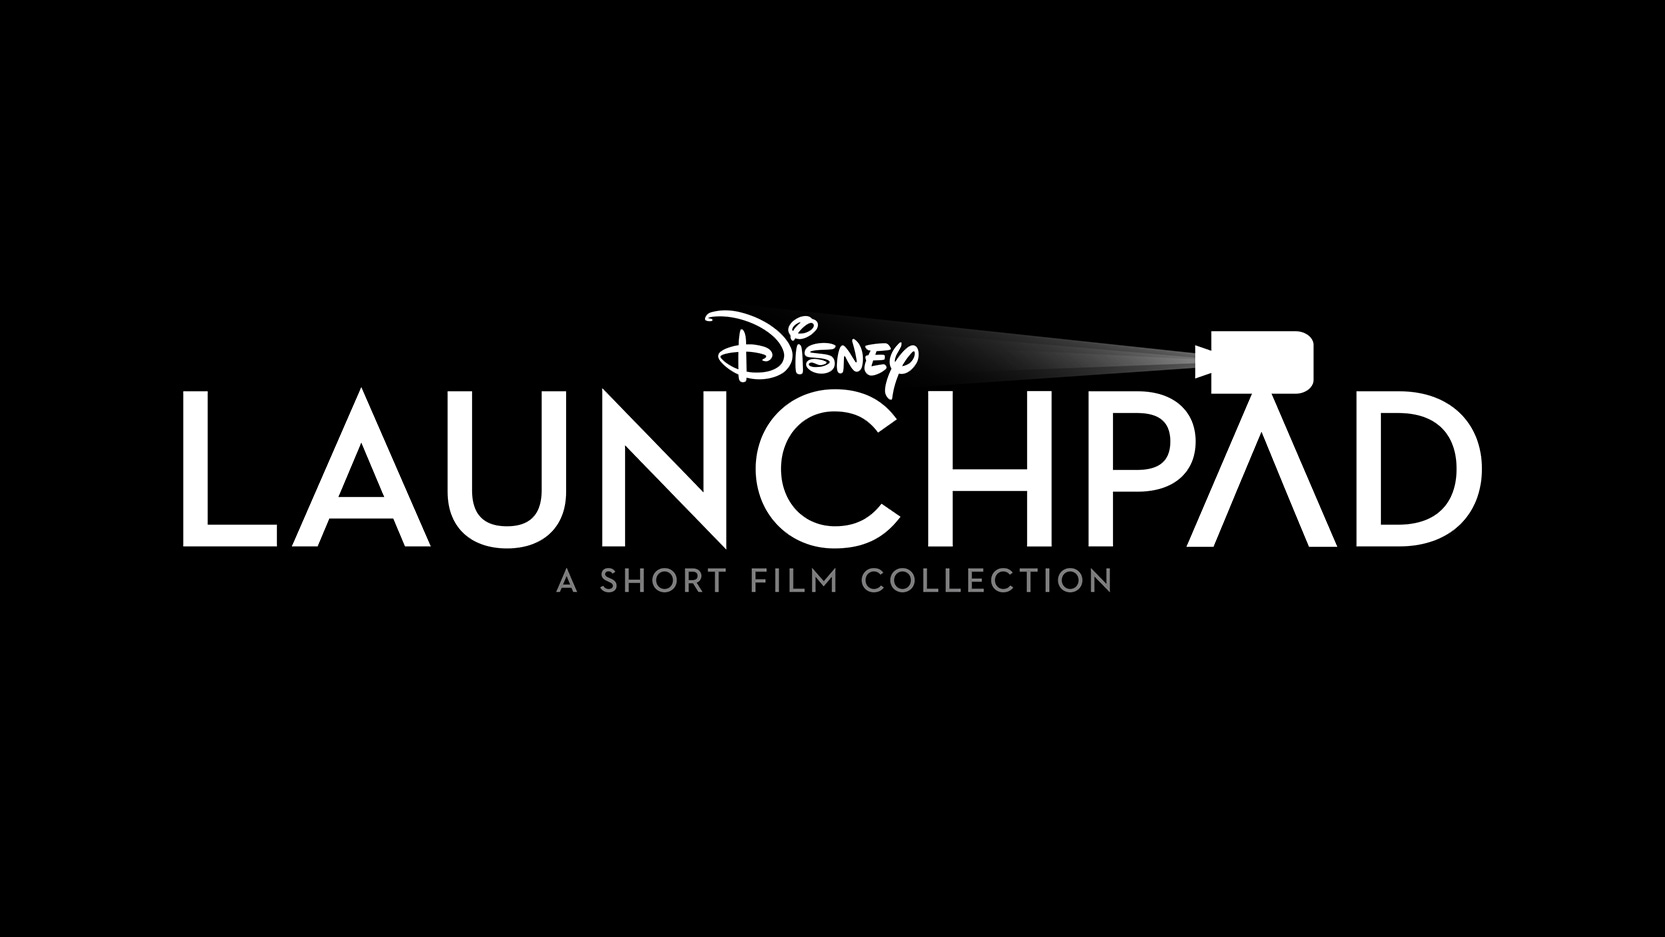 """DISNEY+ RELEASES OFFICIAL TRAILER AND KEY ART FOR DISNEY'S INAUGURAL """"LAUNCHPAD"""" COLLECTION OF SHORT FILMS FROM A NEW GENERATION OF STORYTELLERS"""